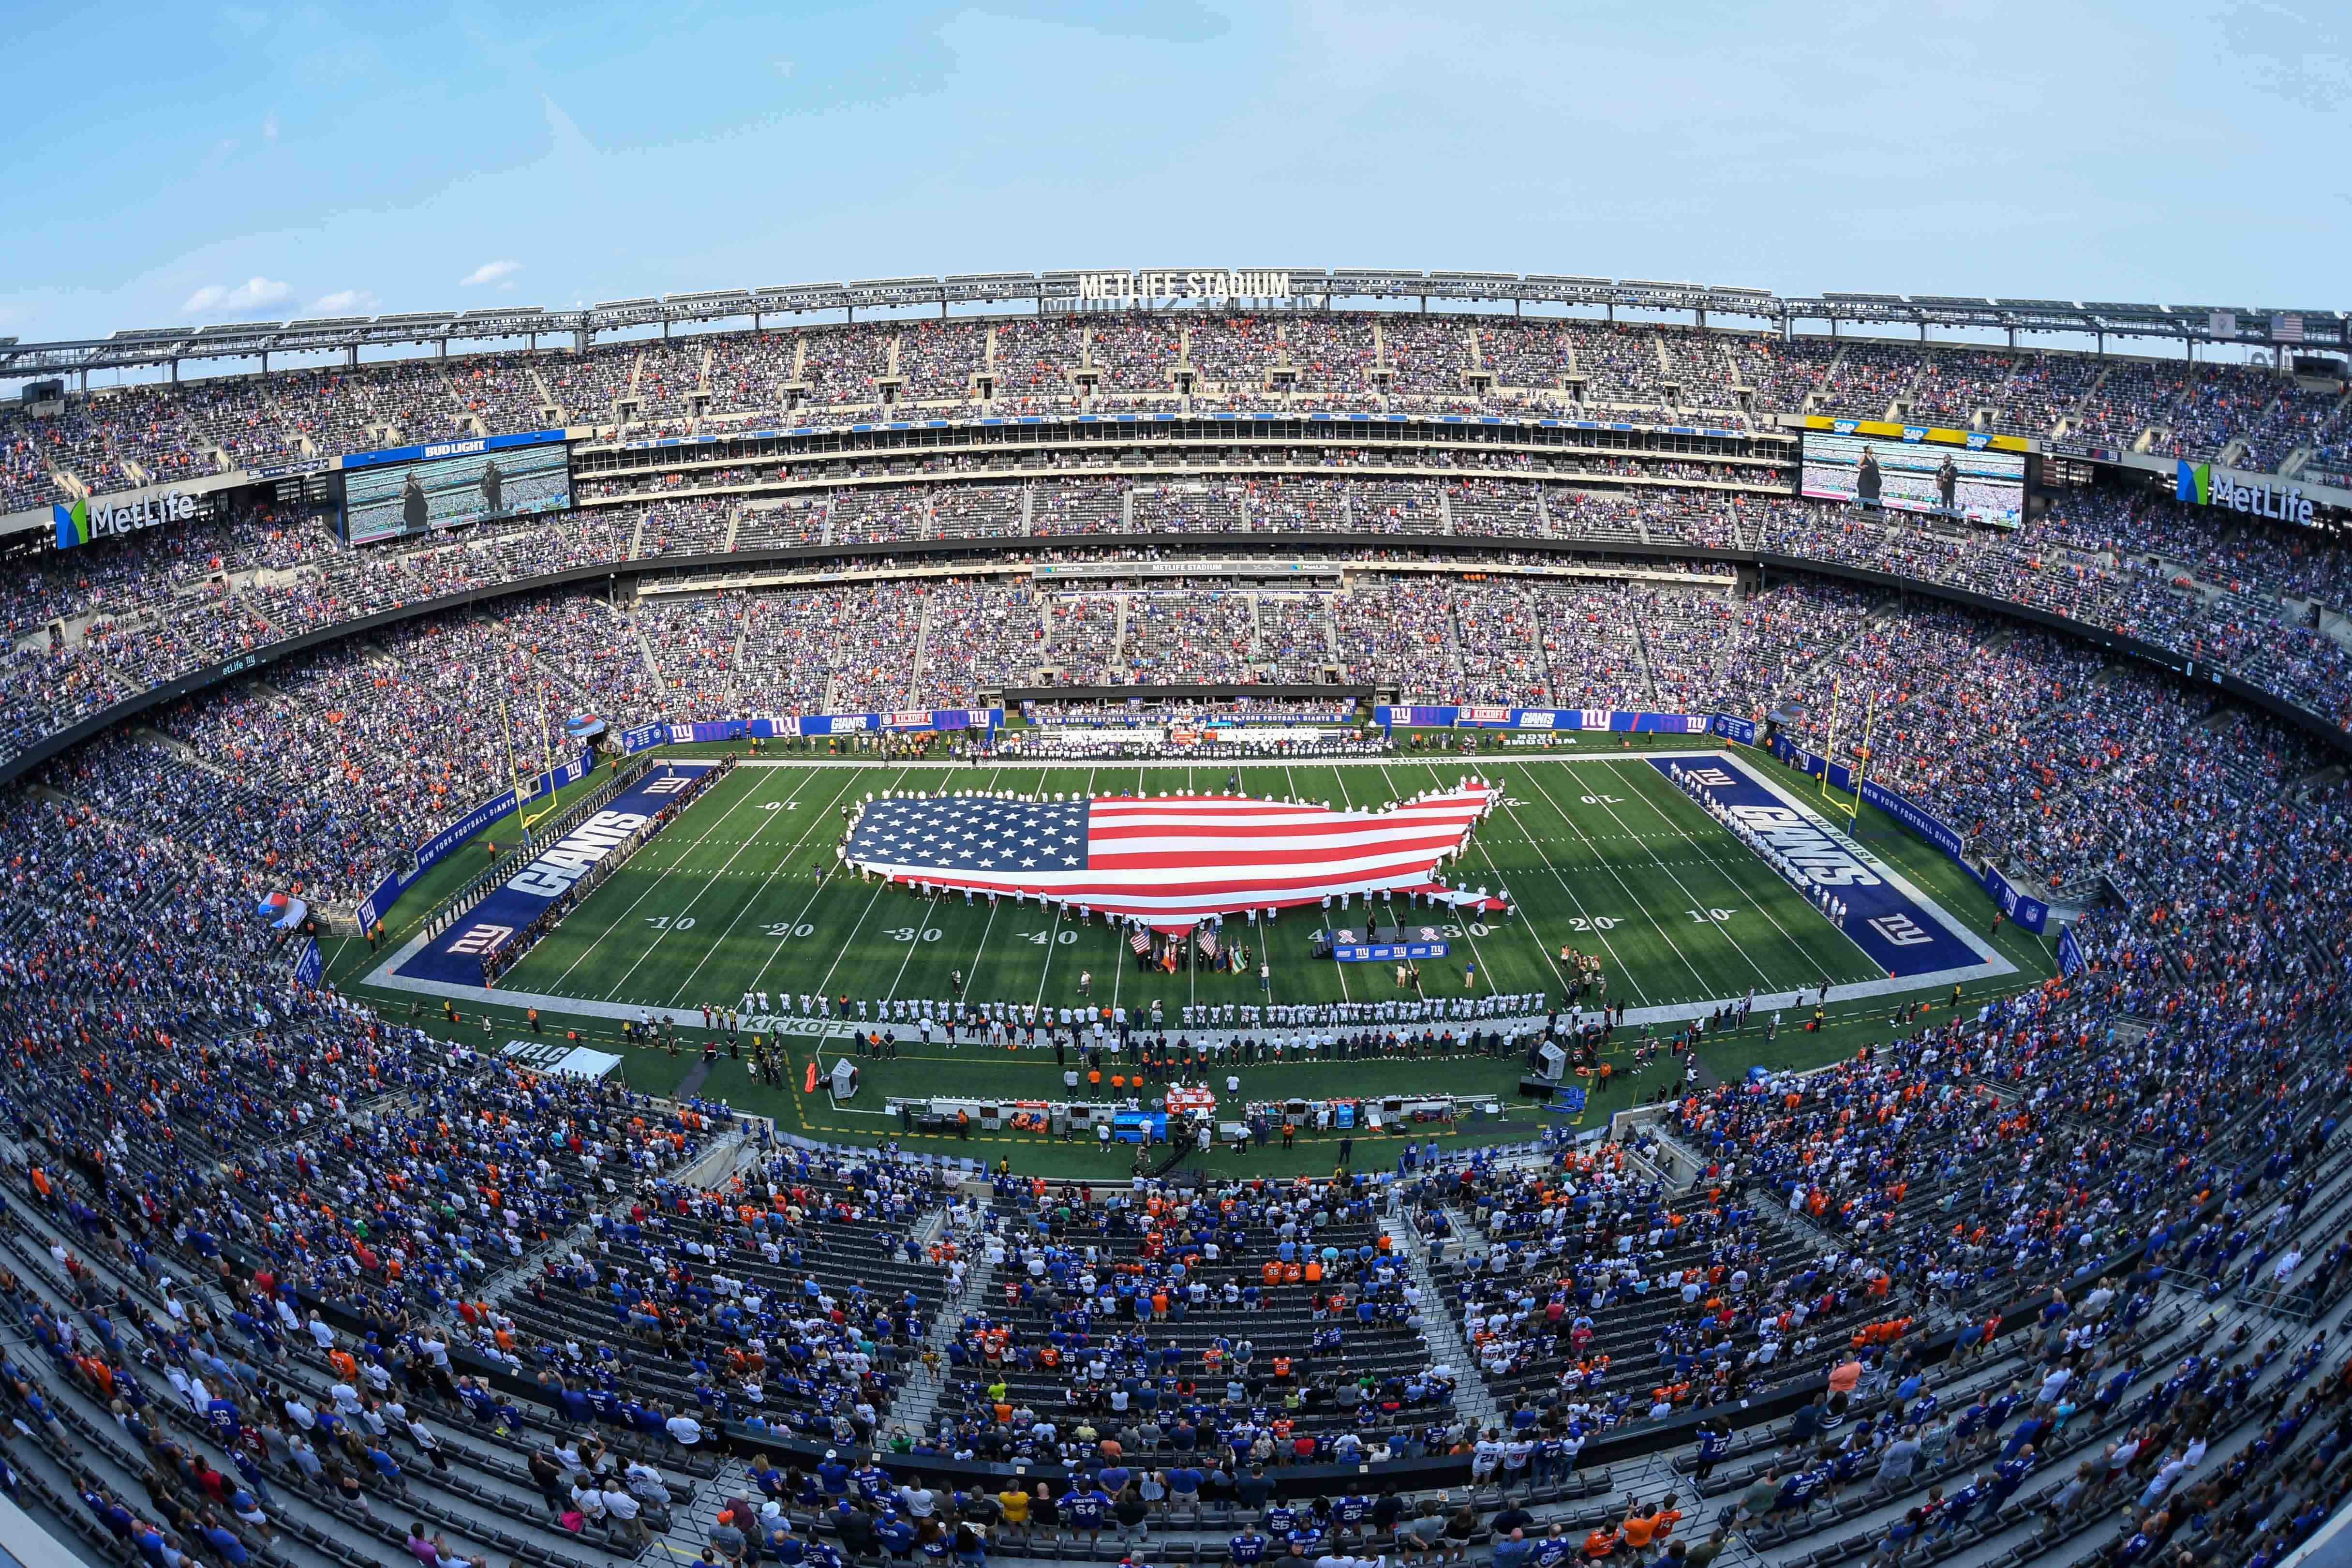 General view during the national anthem before the game between New York Giants and Denver Broncos at MetLife Stadium.